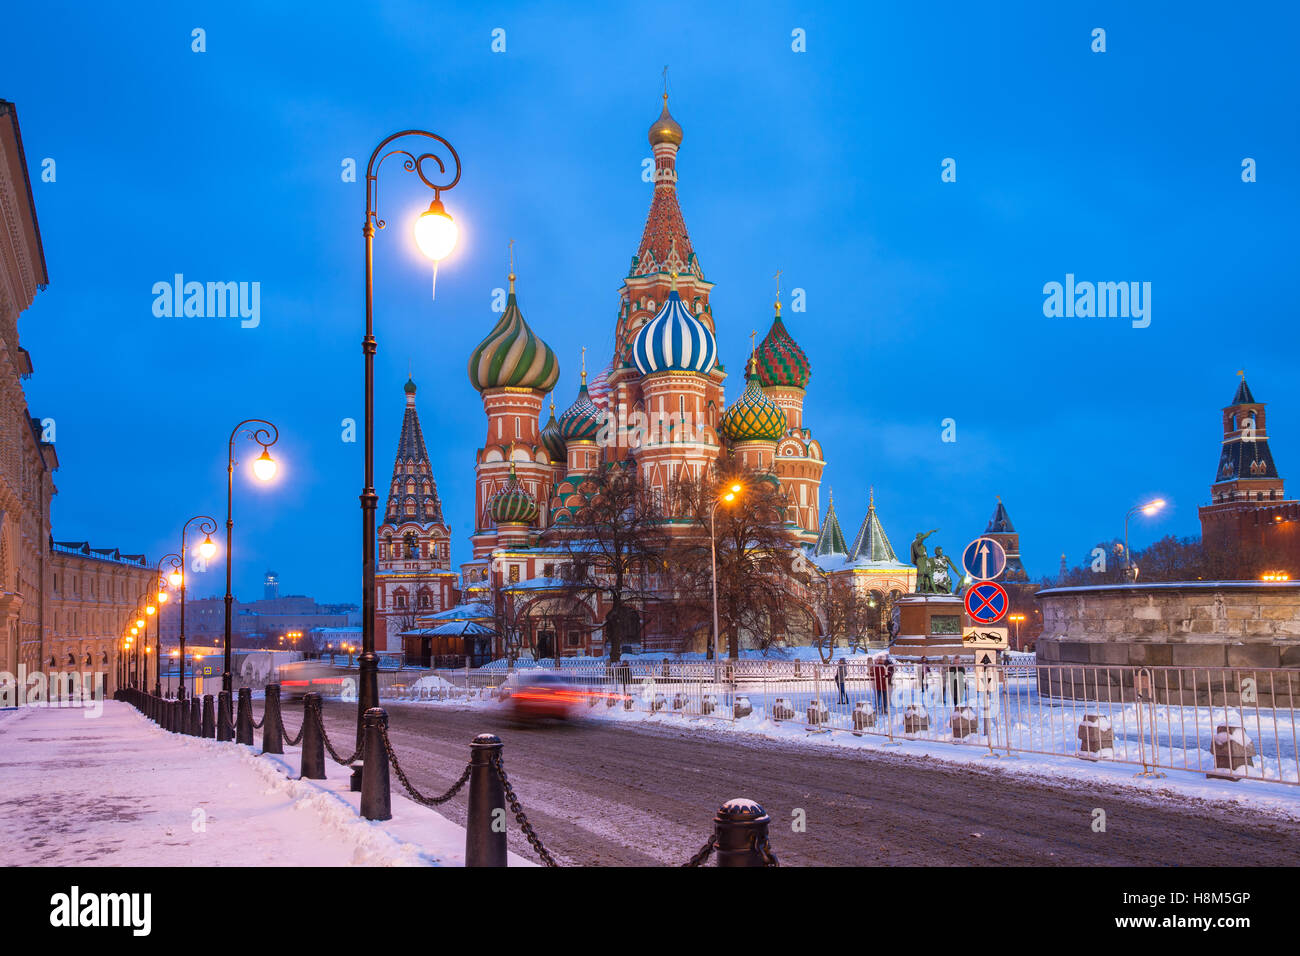 Dusk view of St. Basils Cathedral in winter, Red Square, Moscow, Russia - Stock Image